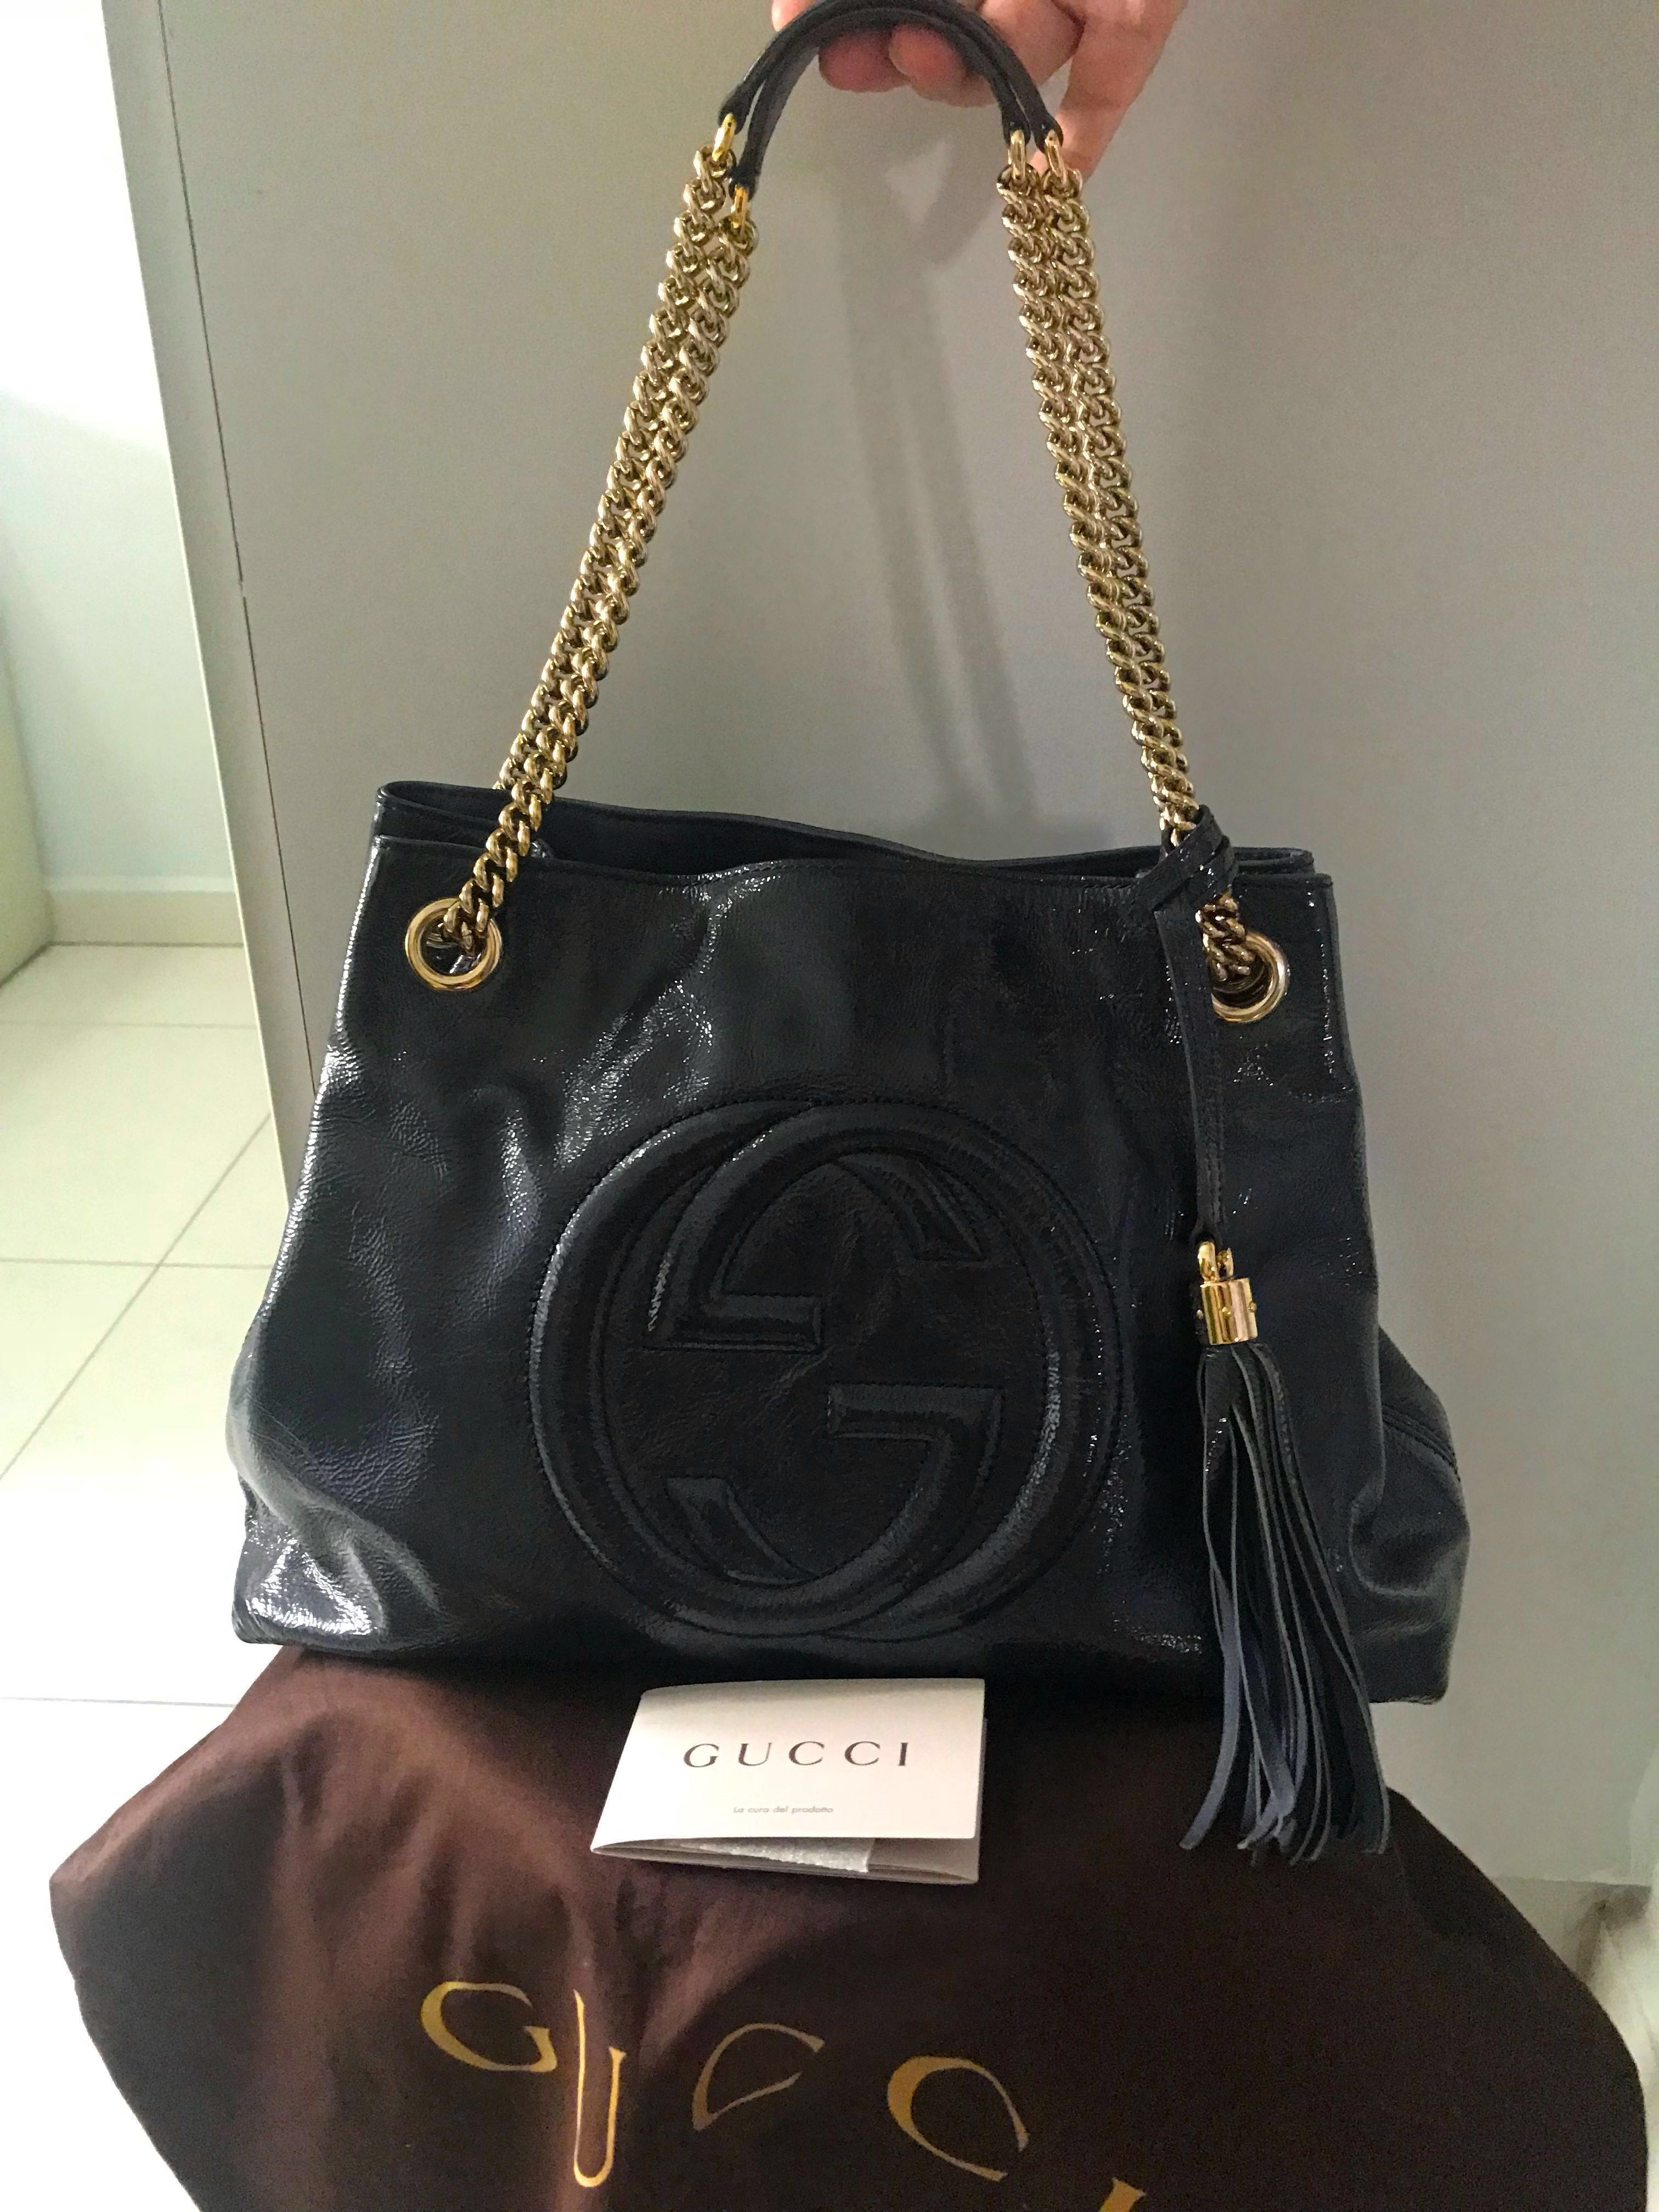 d8987fdec6f88 Authentic Gucci Soho Patent Leather Tote Bag